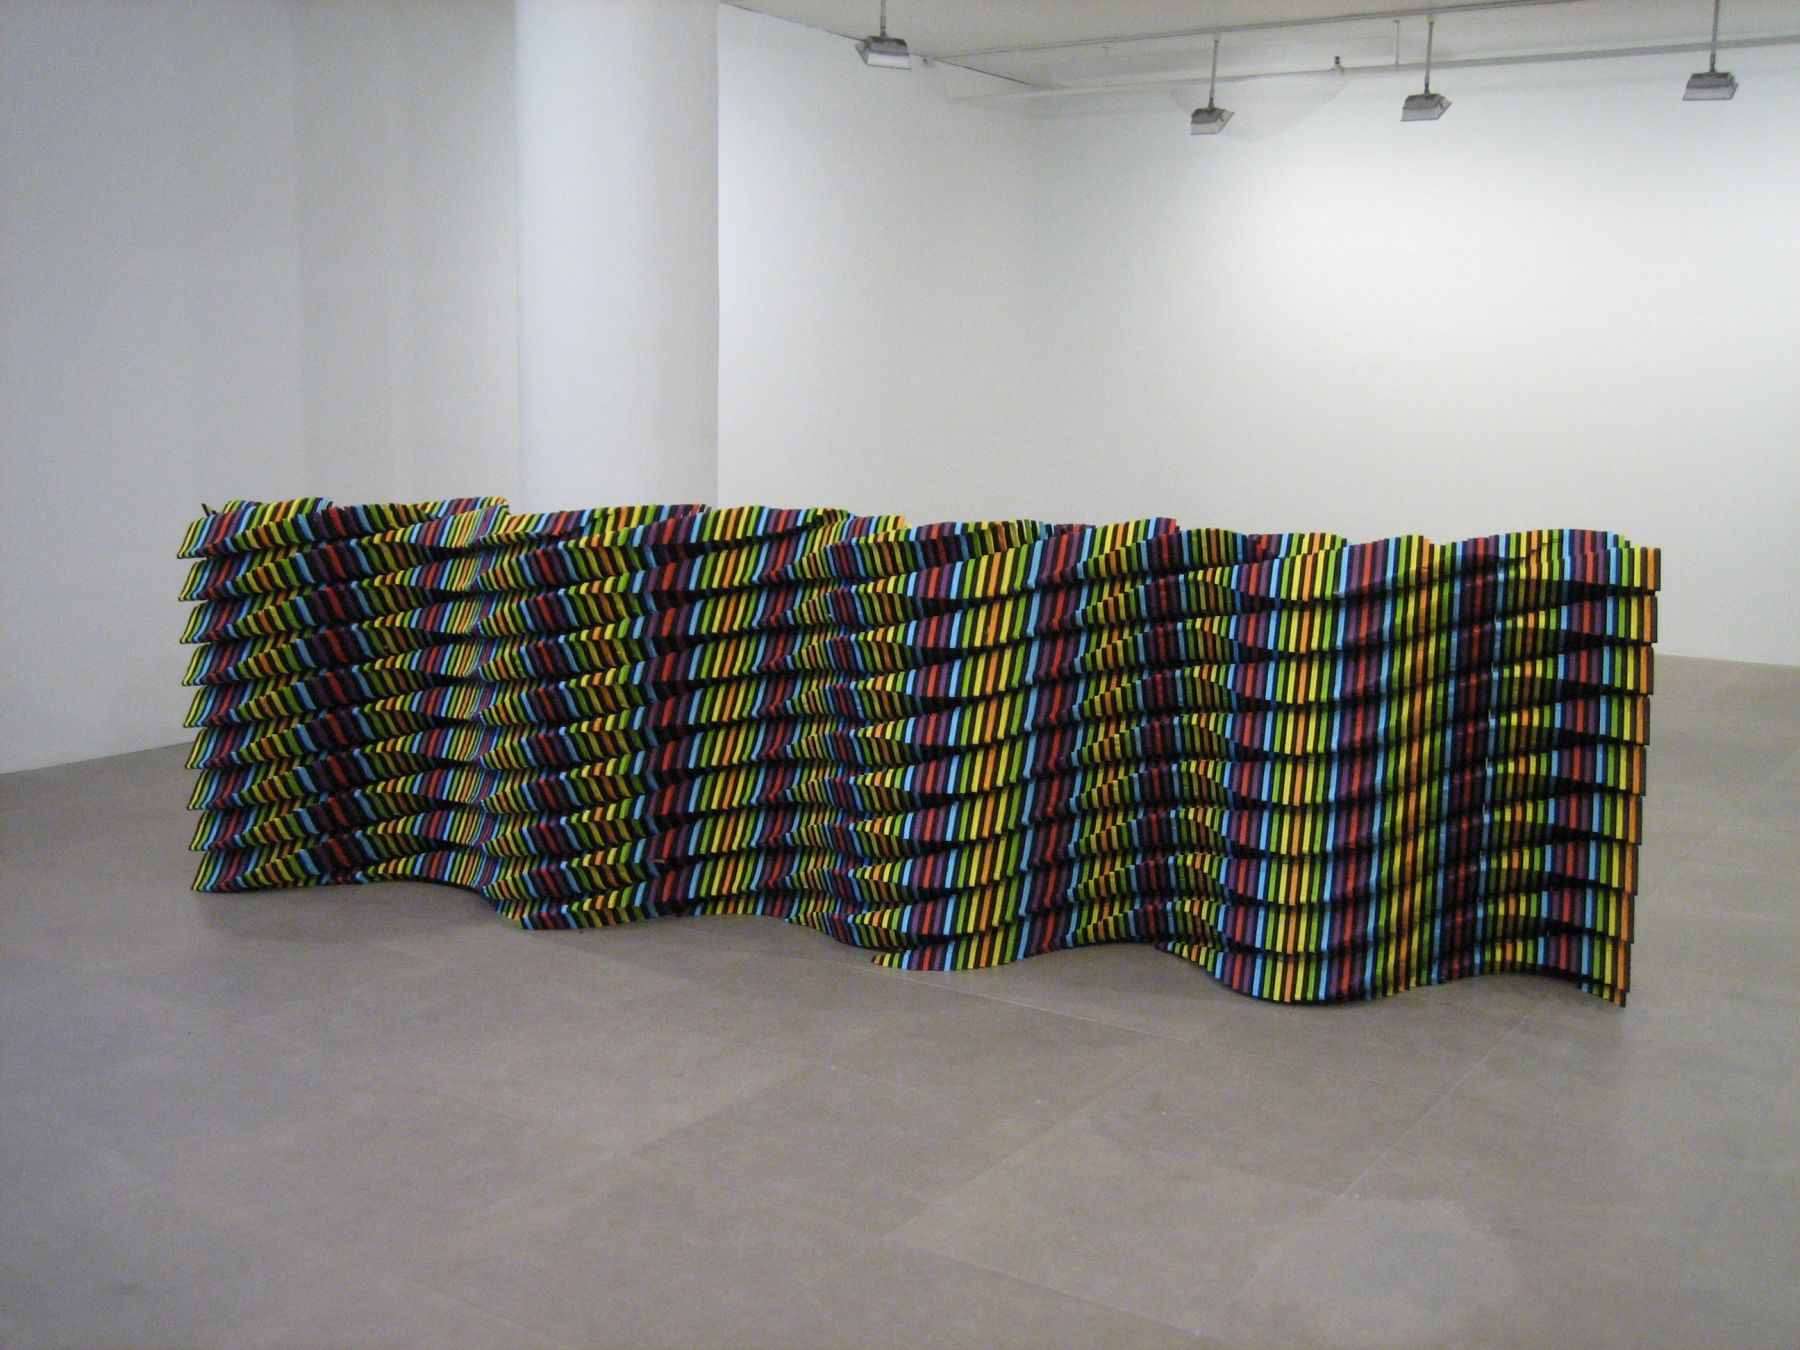 Ara Peterson, Standing Waves, 2004, wood, acrylic, 45 x 168 x 30 inches